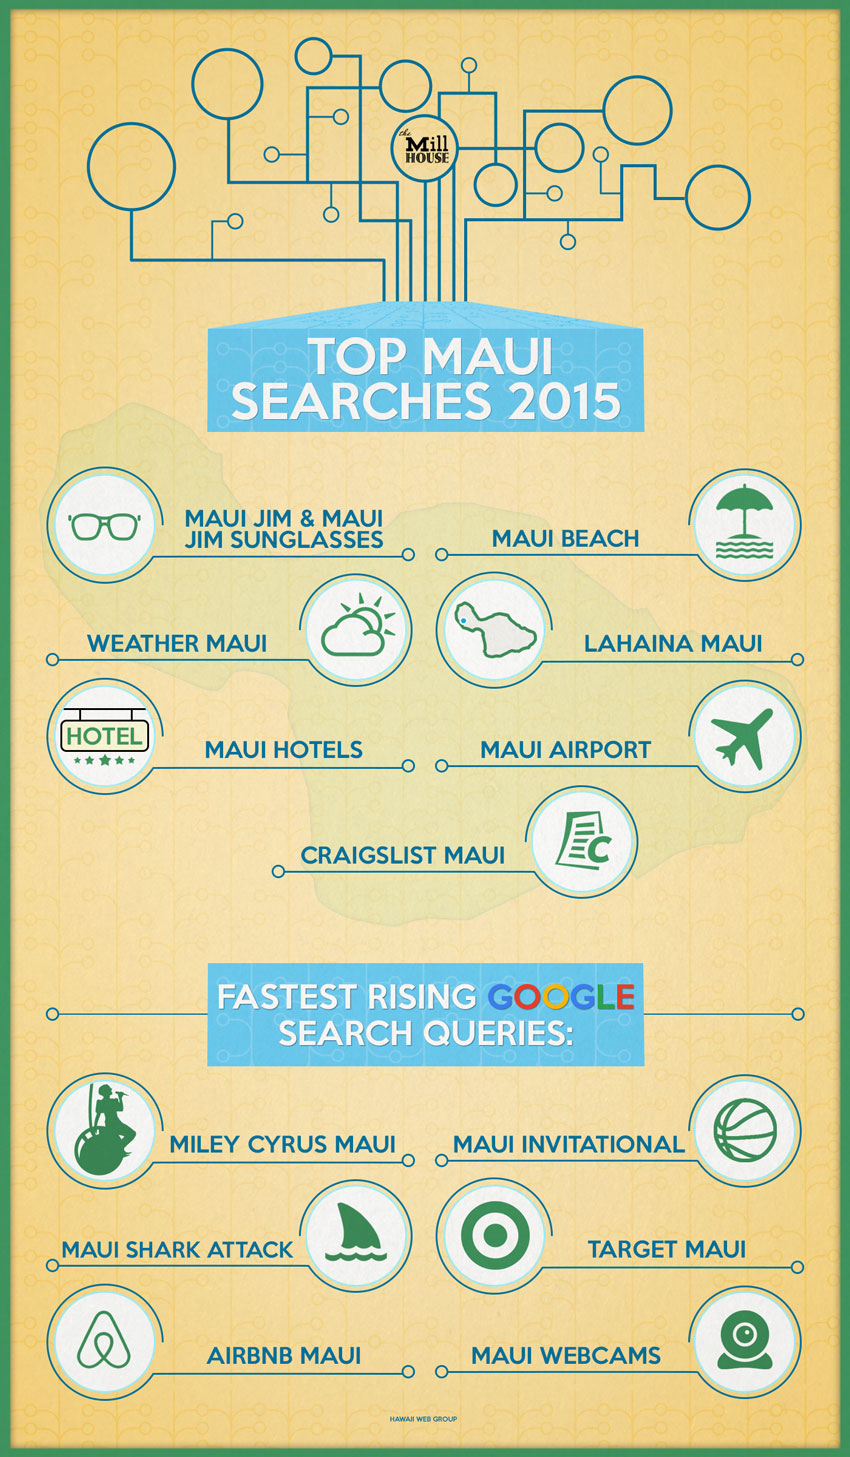 top maui web searches 2015 infographic